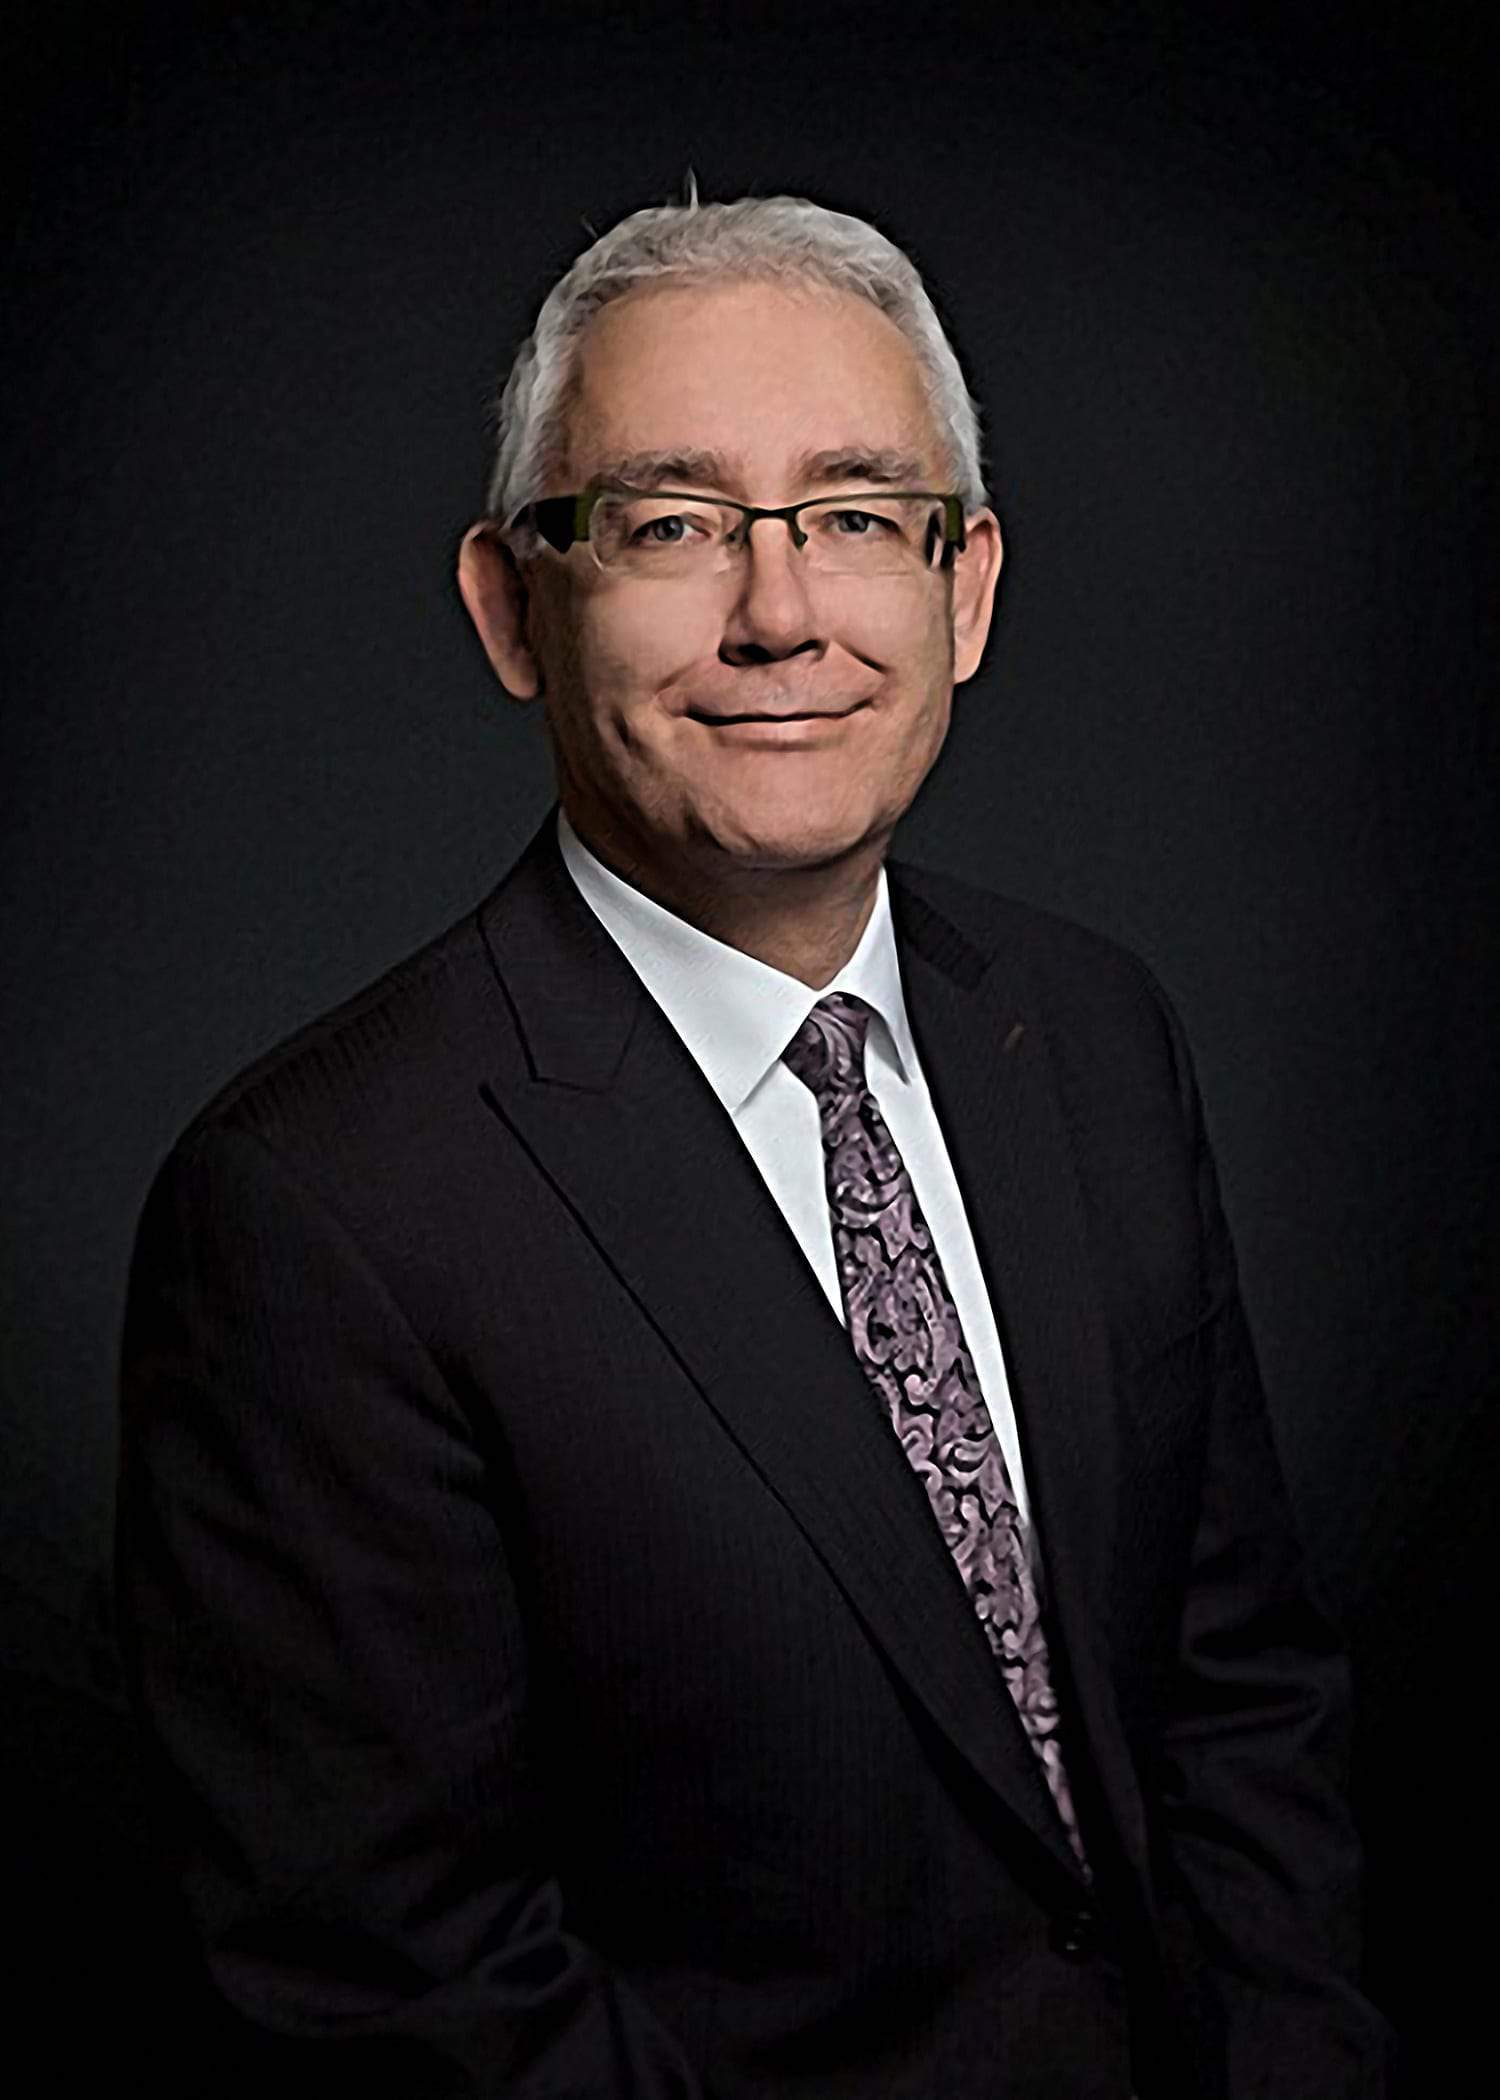 Gary Bosgoed is known for his work with Indigenous communities in Saskatchewan and Alberta. Photo - Worley Parsons